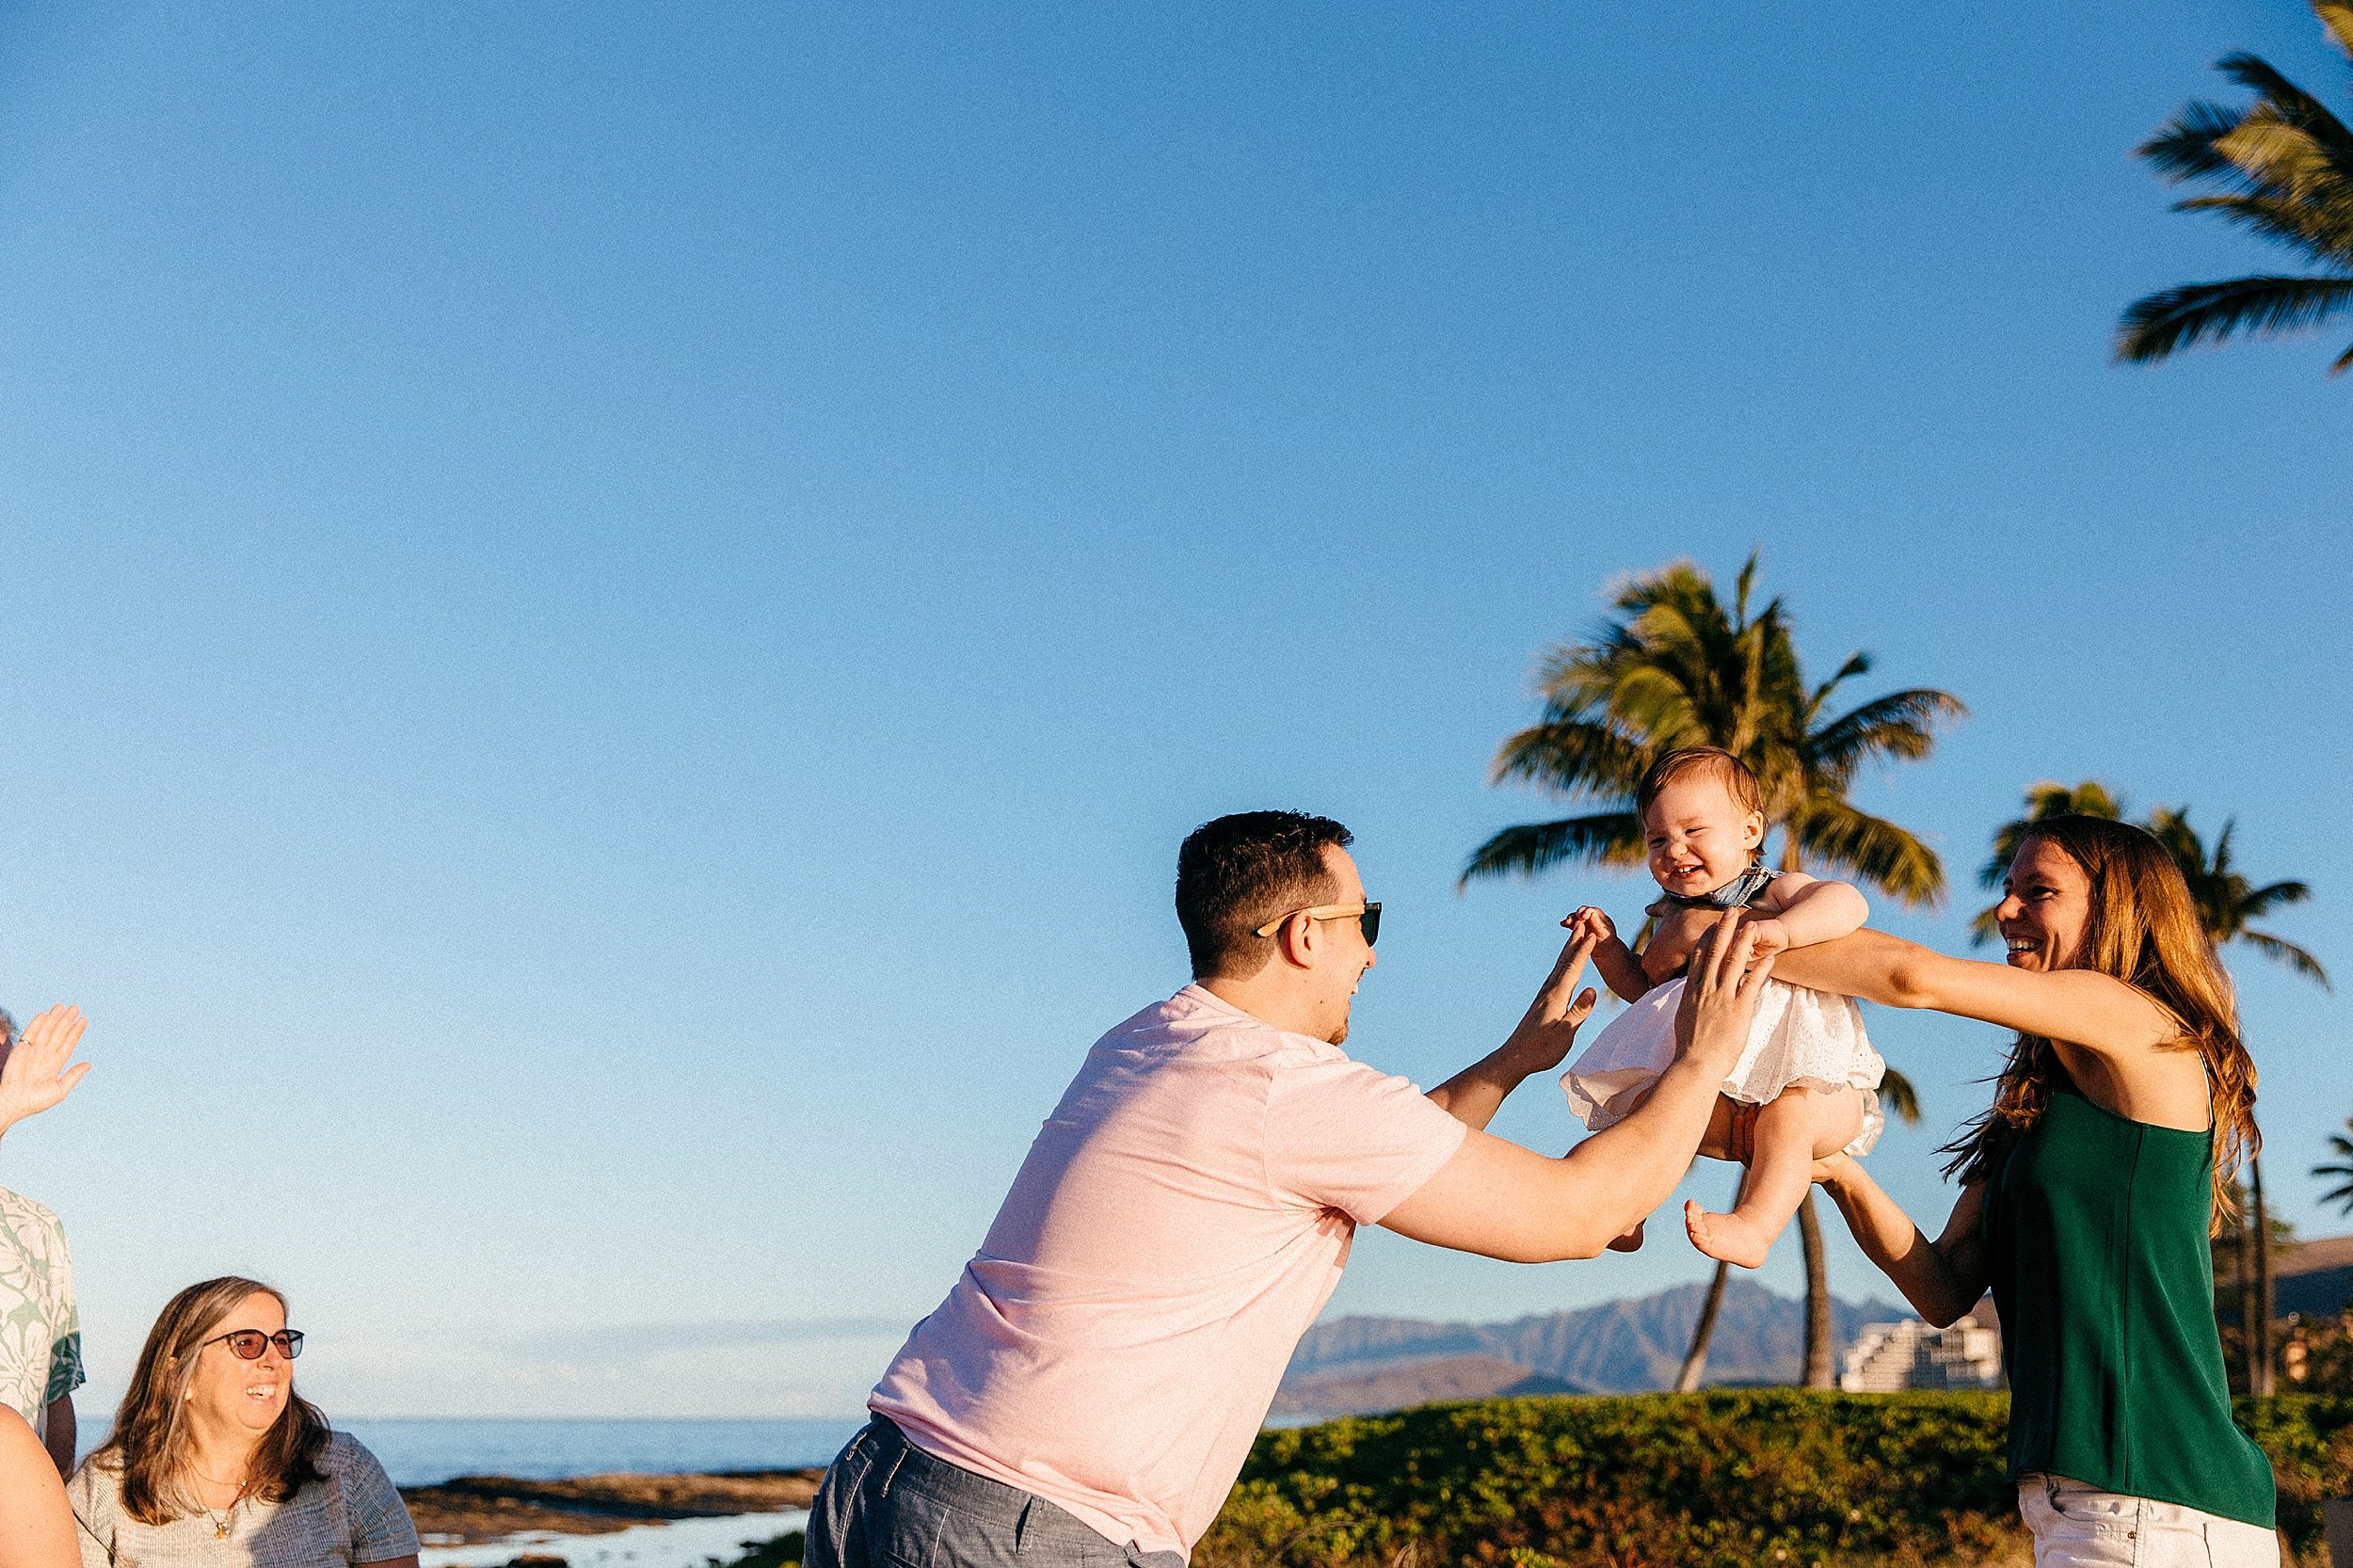 Mom and dad play with baby girl below palm trees, mountains, and the beach in Ko Olina.